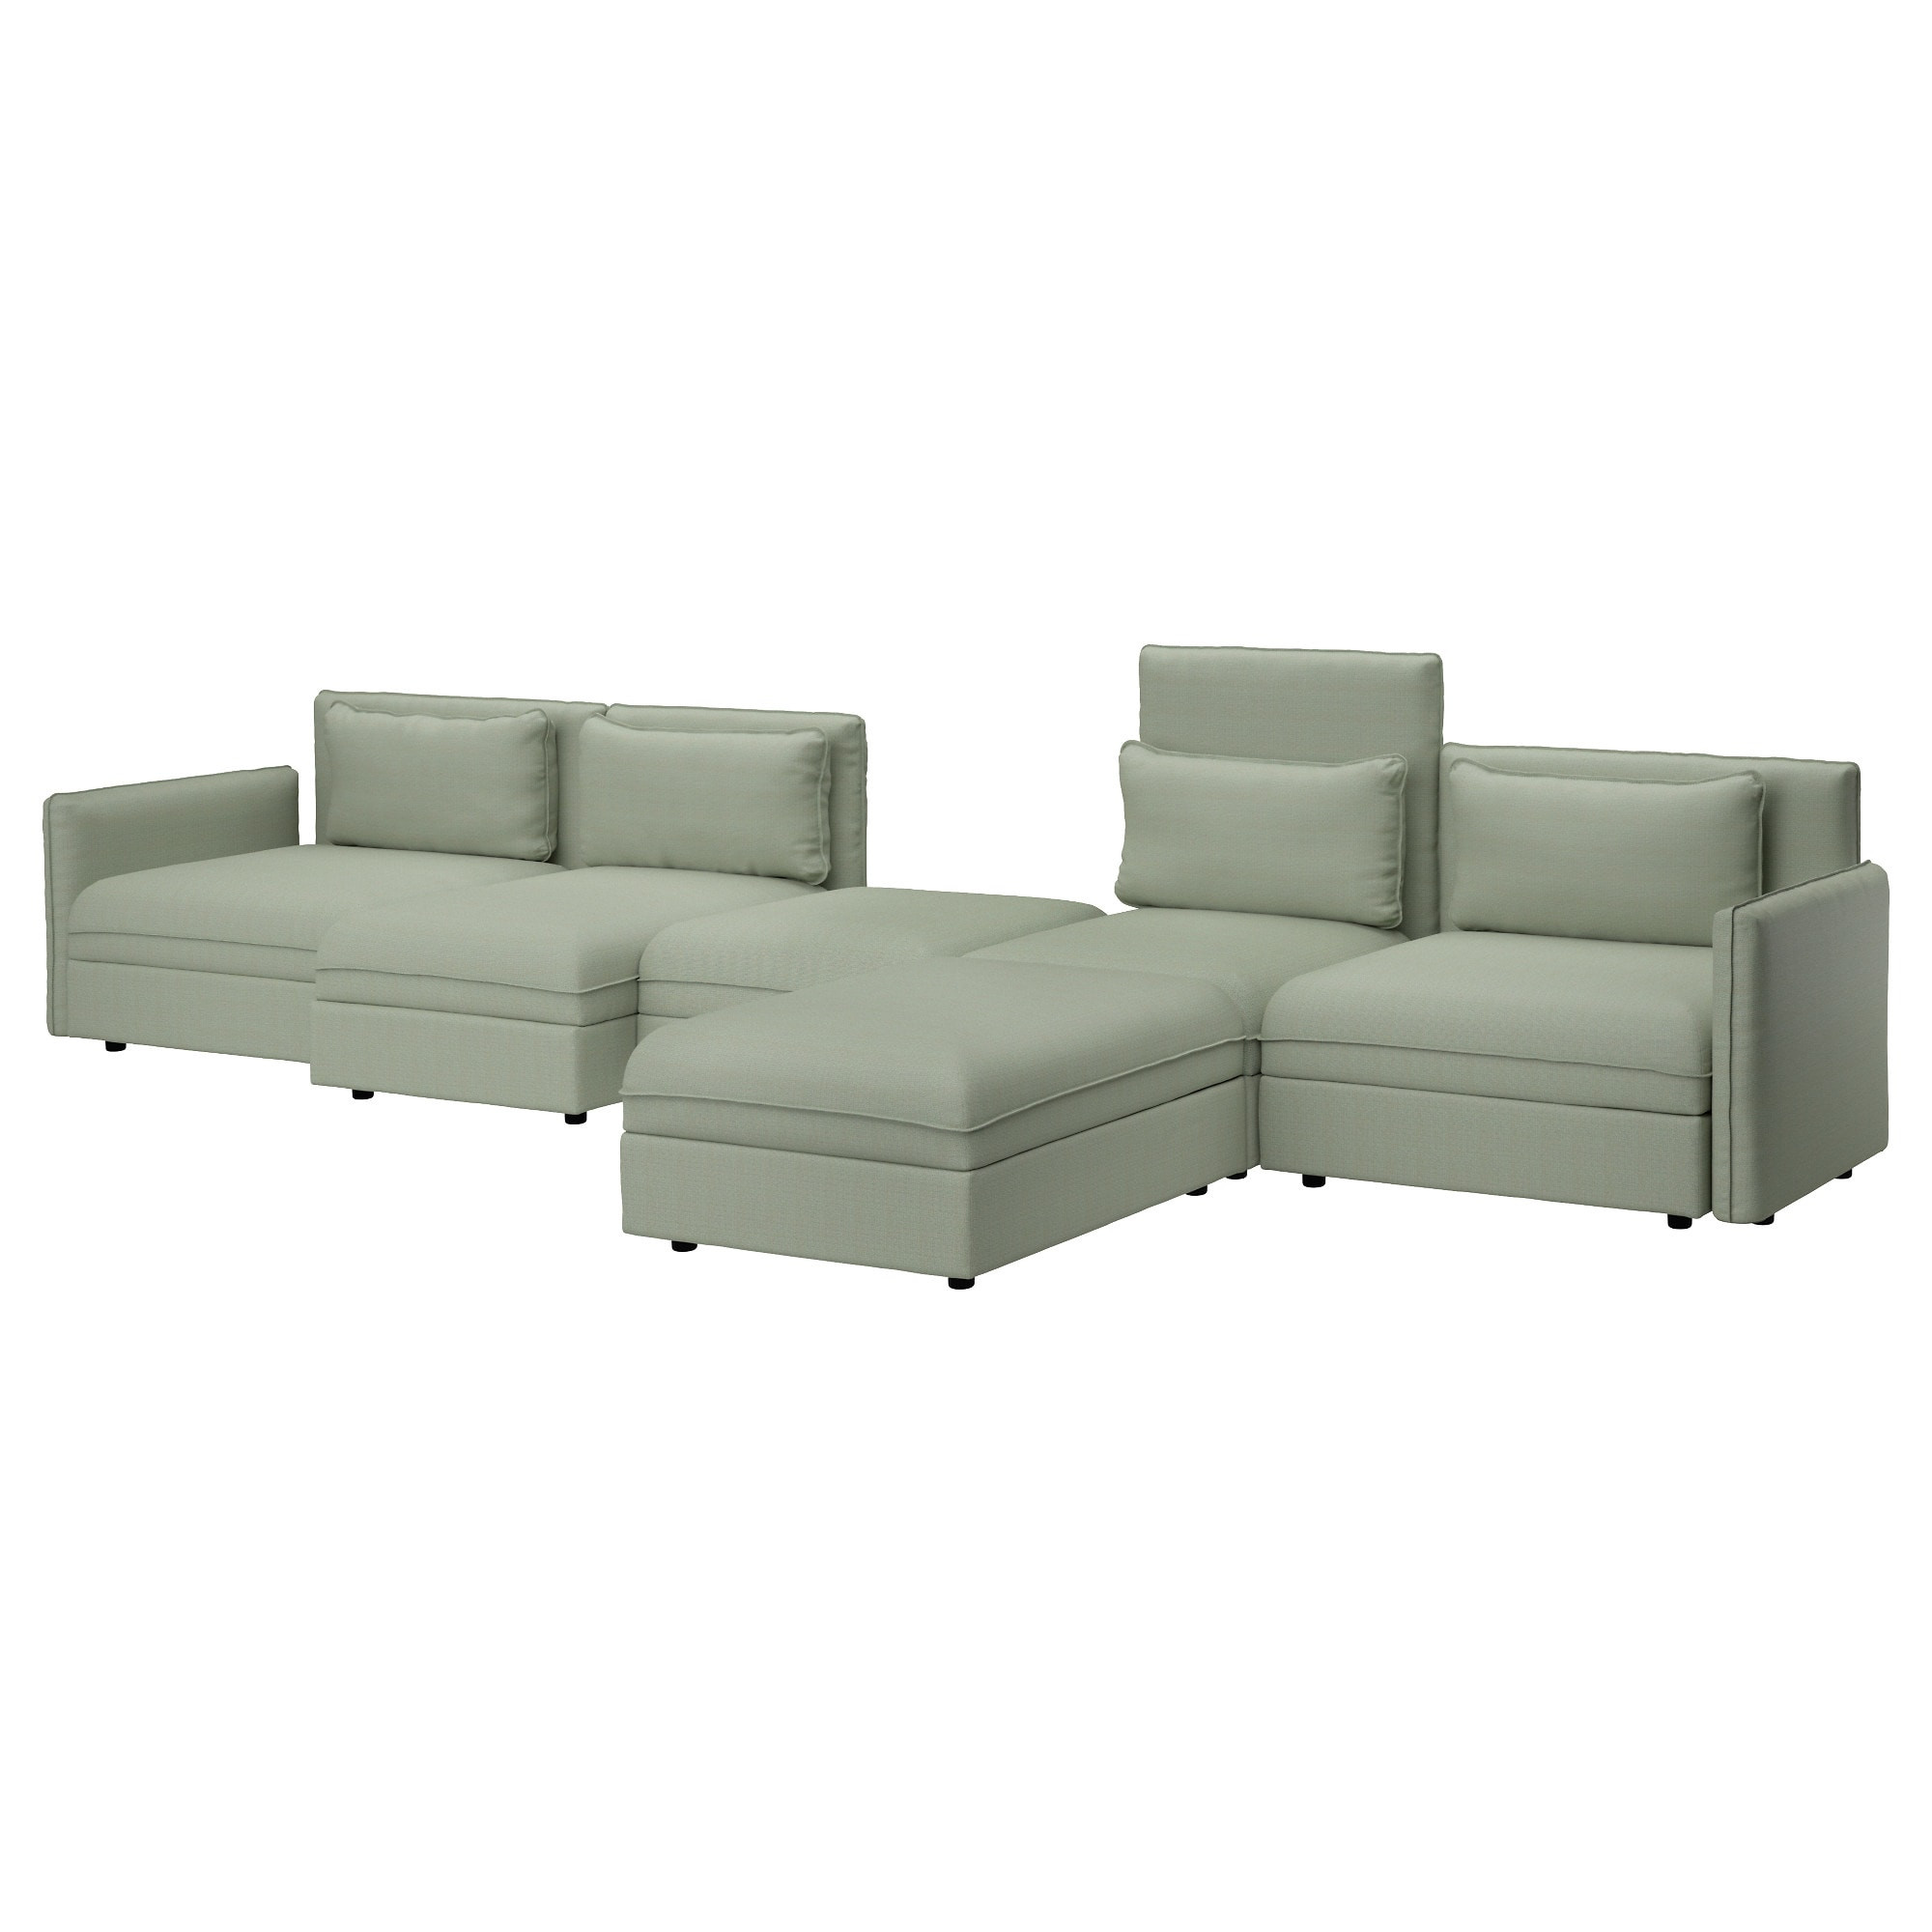 Best ideas about Ikea Sectional Sofa . Save or Pin Modular & Sectional Sofas Now.